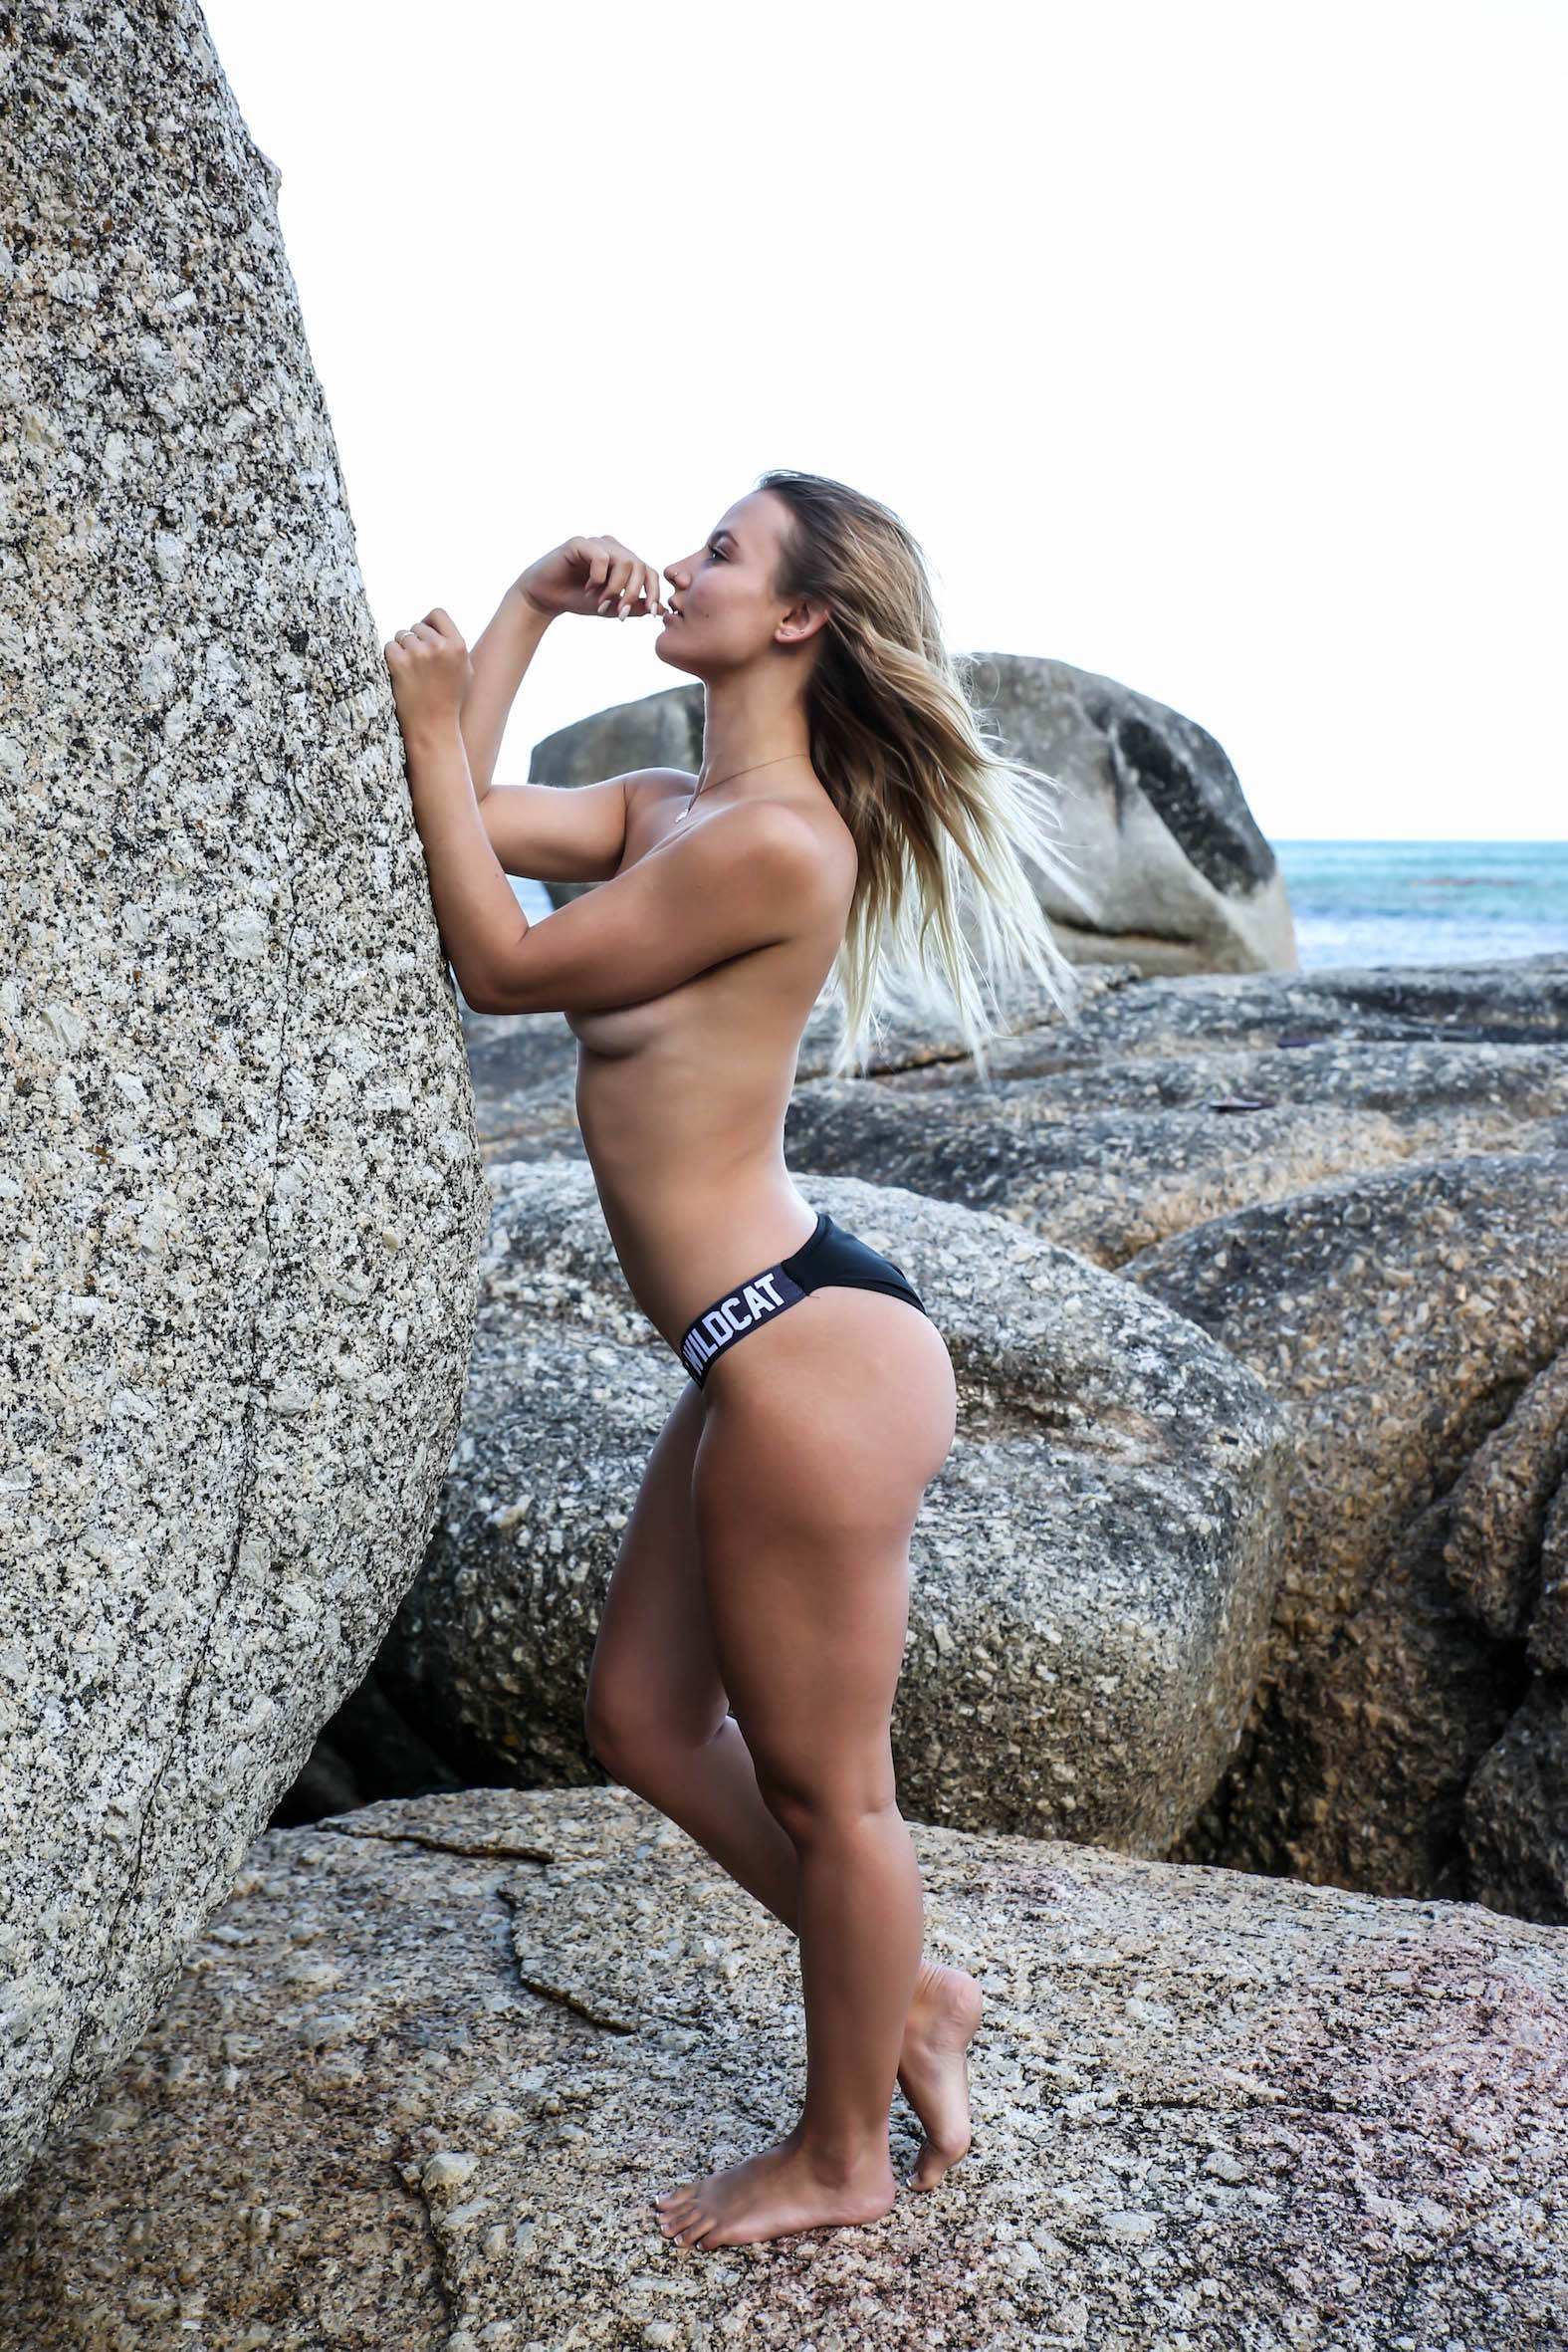 Our South African Babes feature with Kirsten Wylie